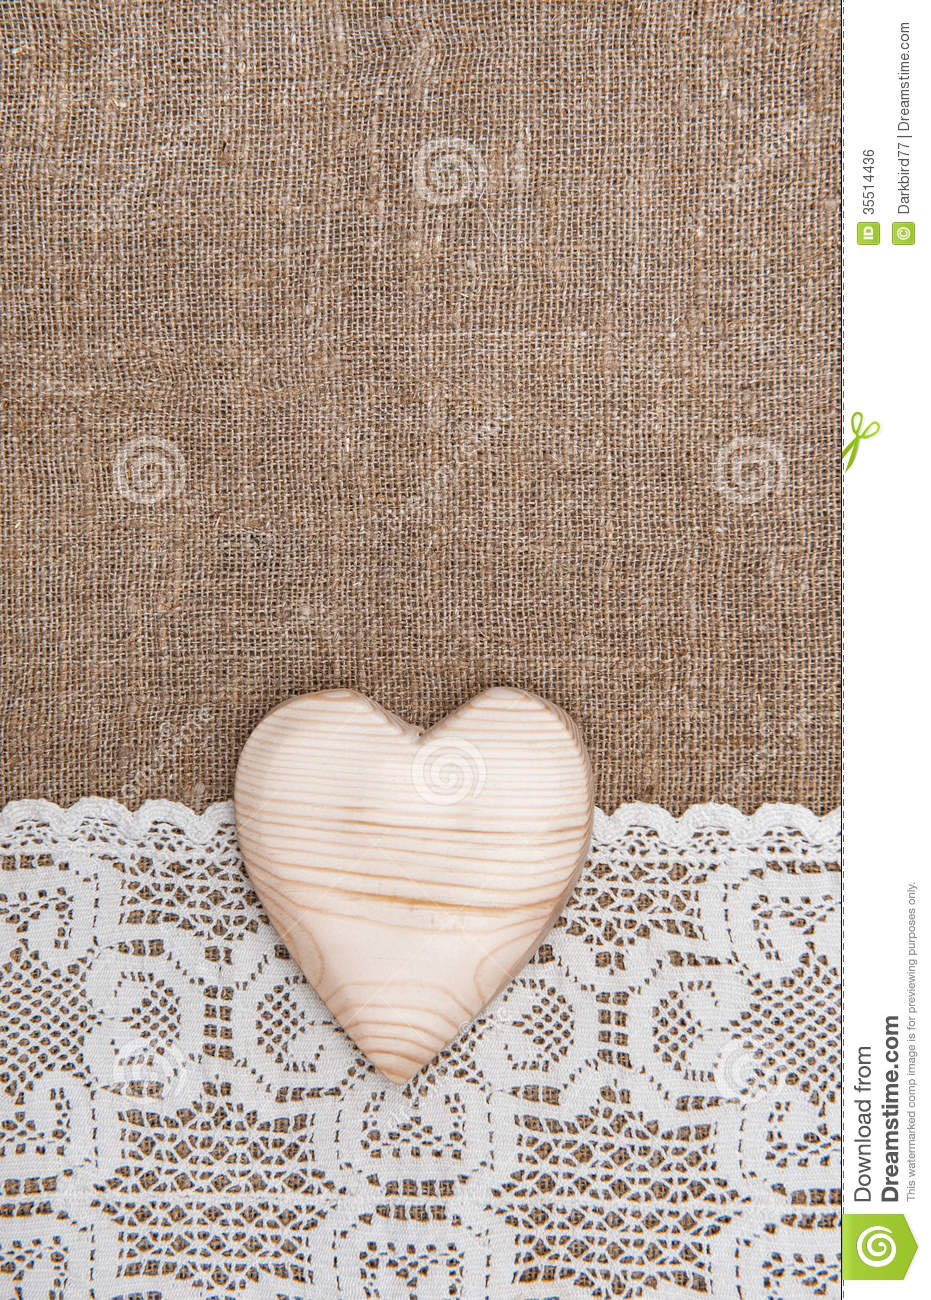 Burlap Background With Lacy Cloth And Wooden Heart Royalty Free Stock Photo